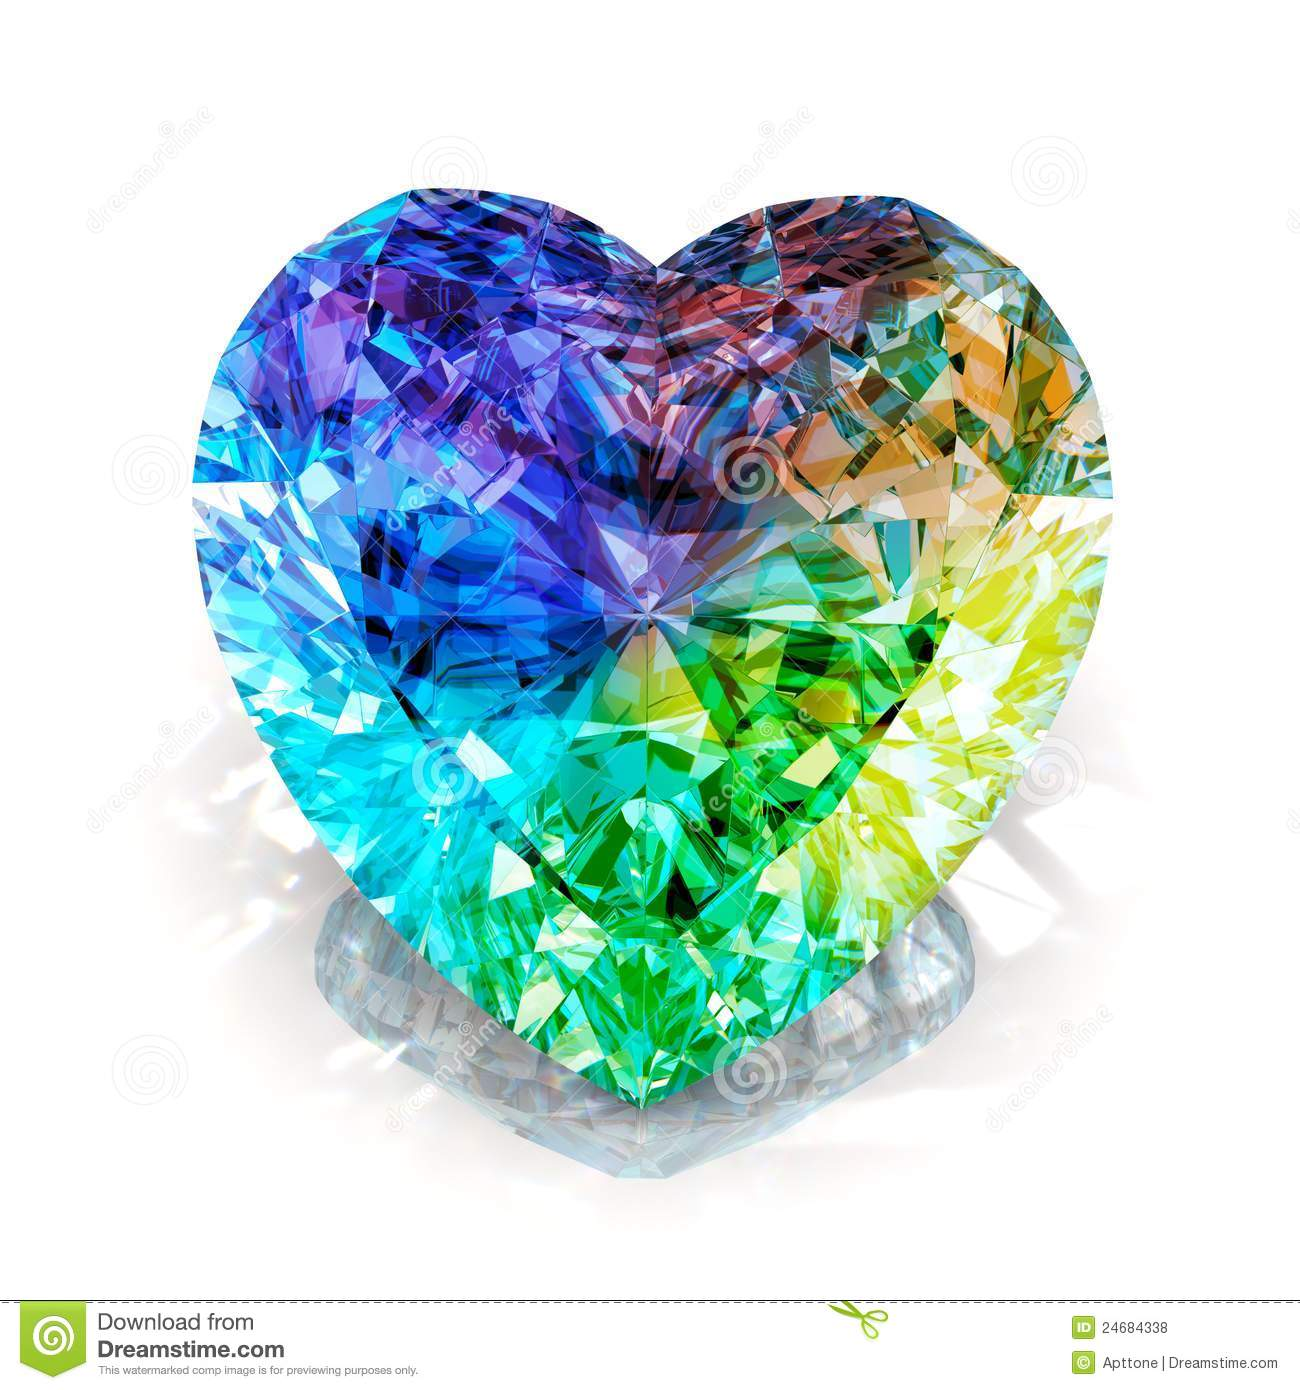 Rainbow heart shape diamond. Beautiful shape emerald image with ...